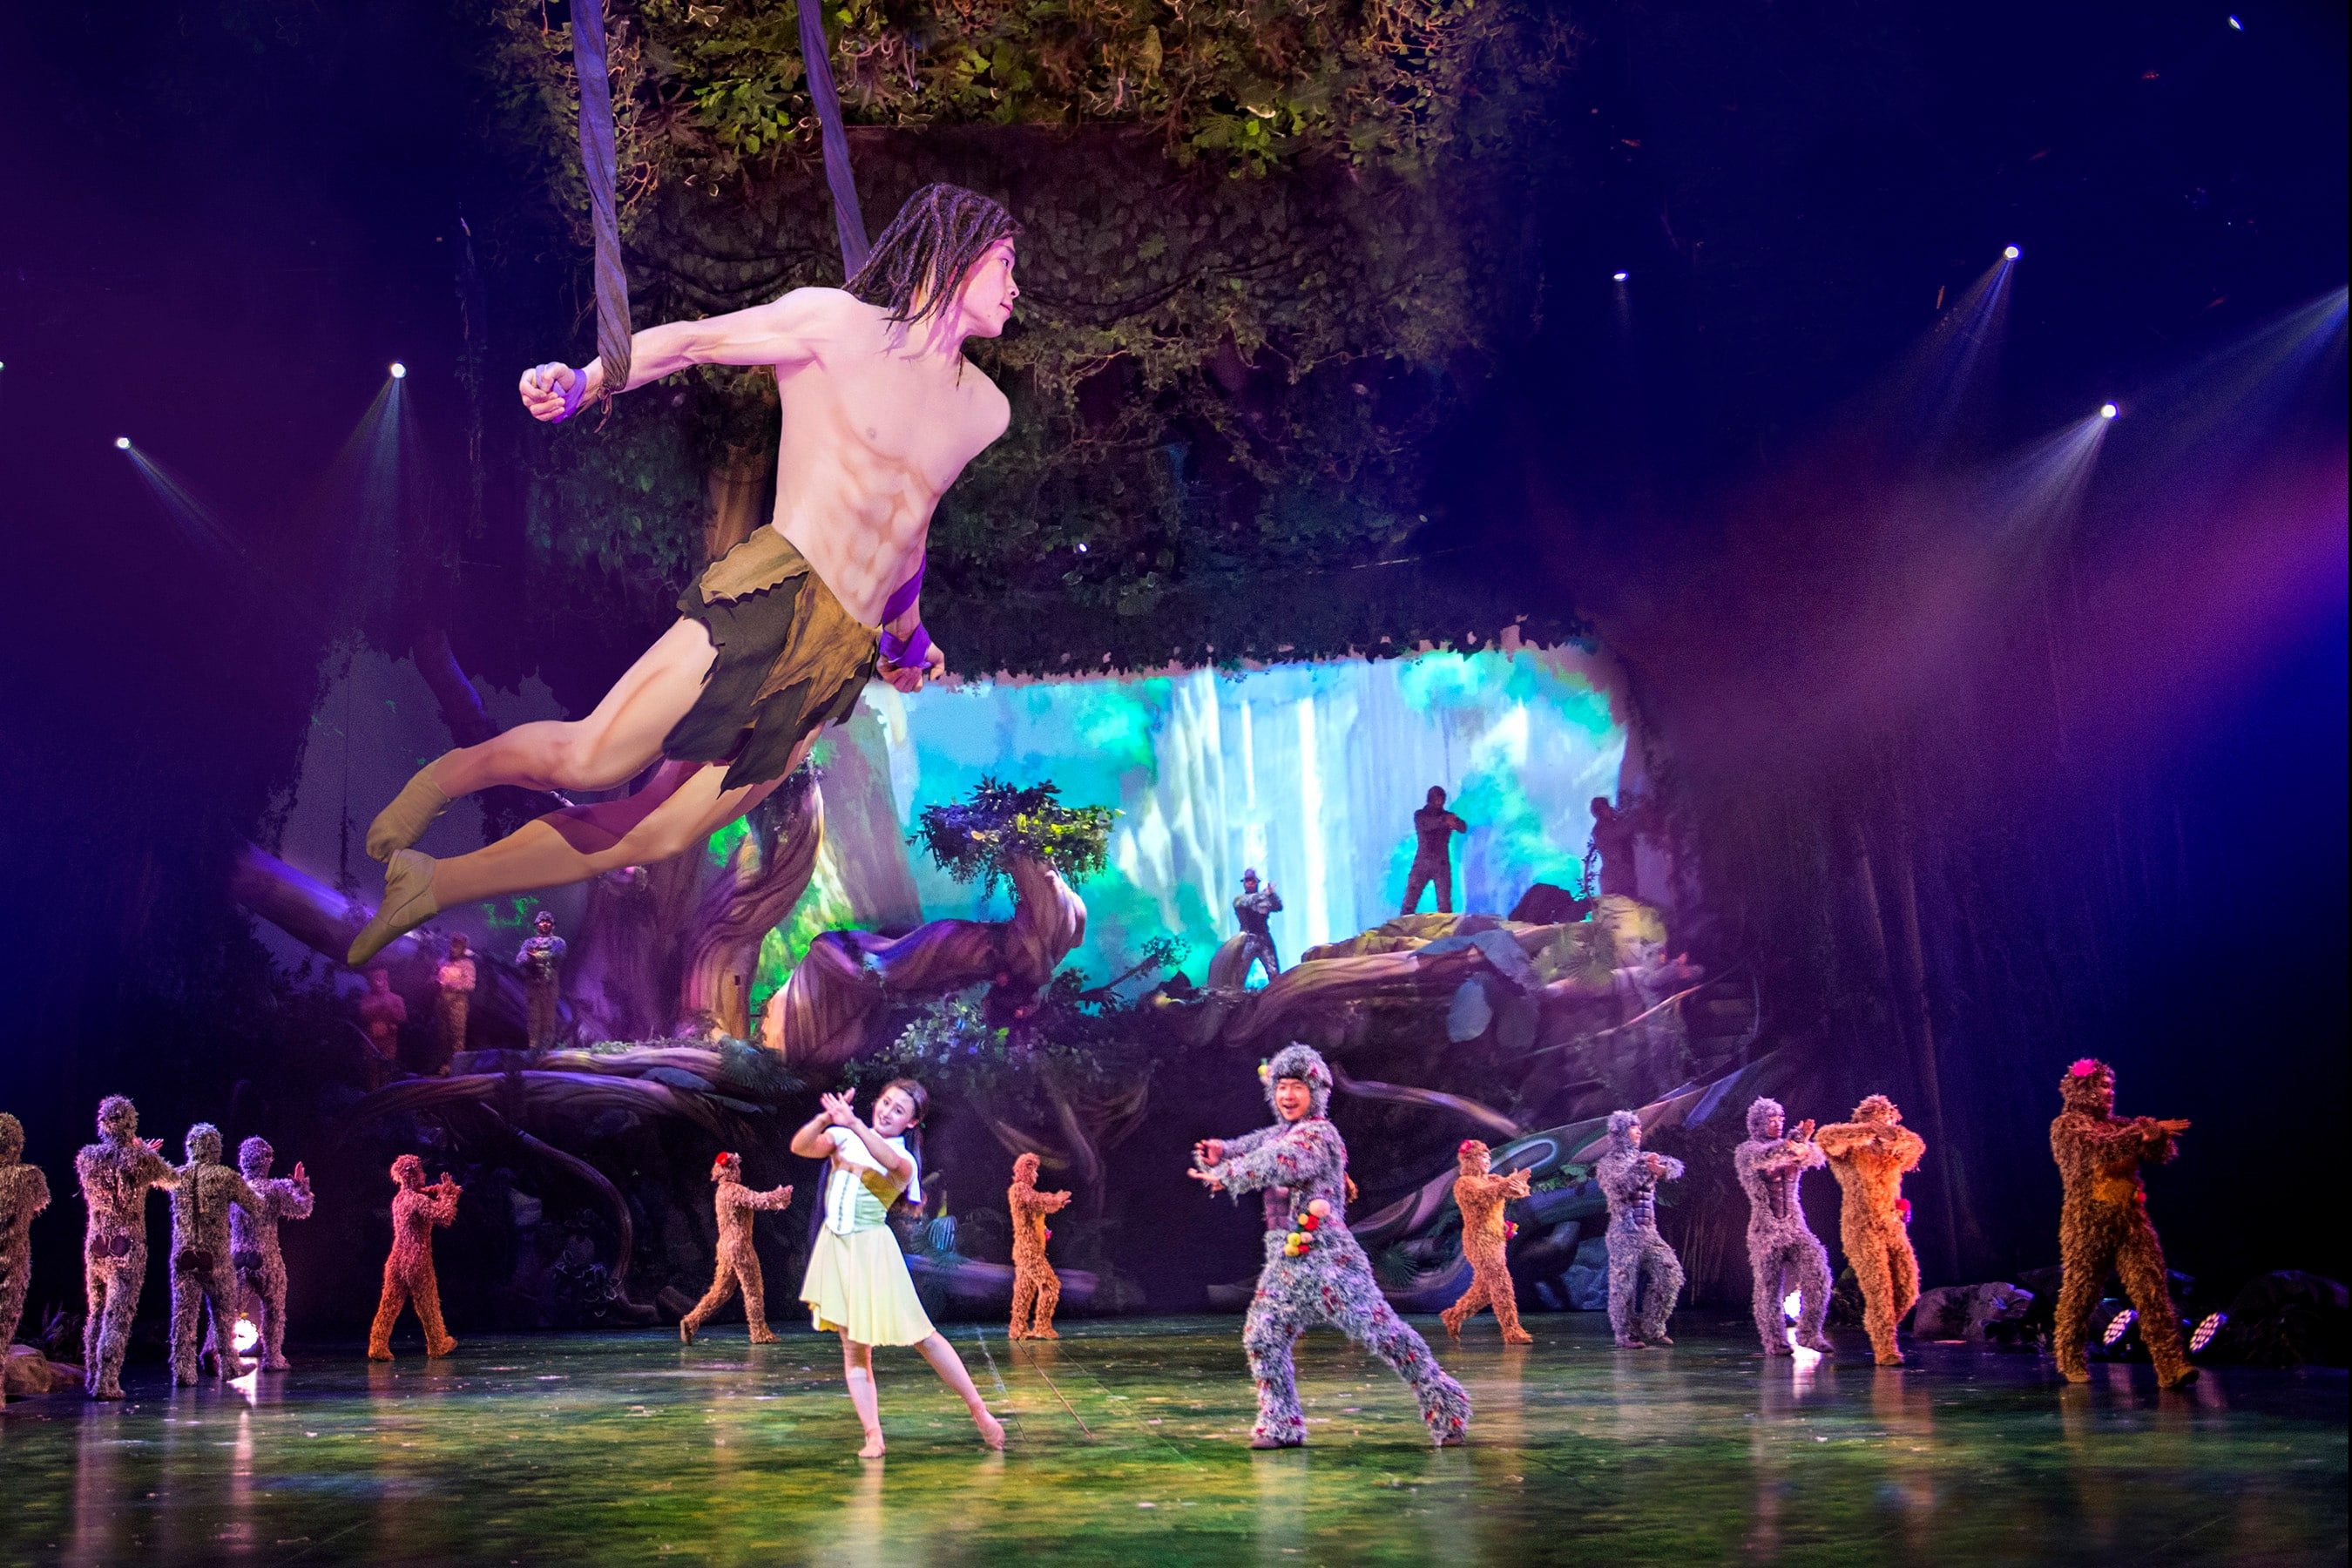 'Tarzan: Call of the Jungle' at Shanghai Disneyland